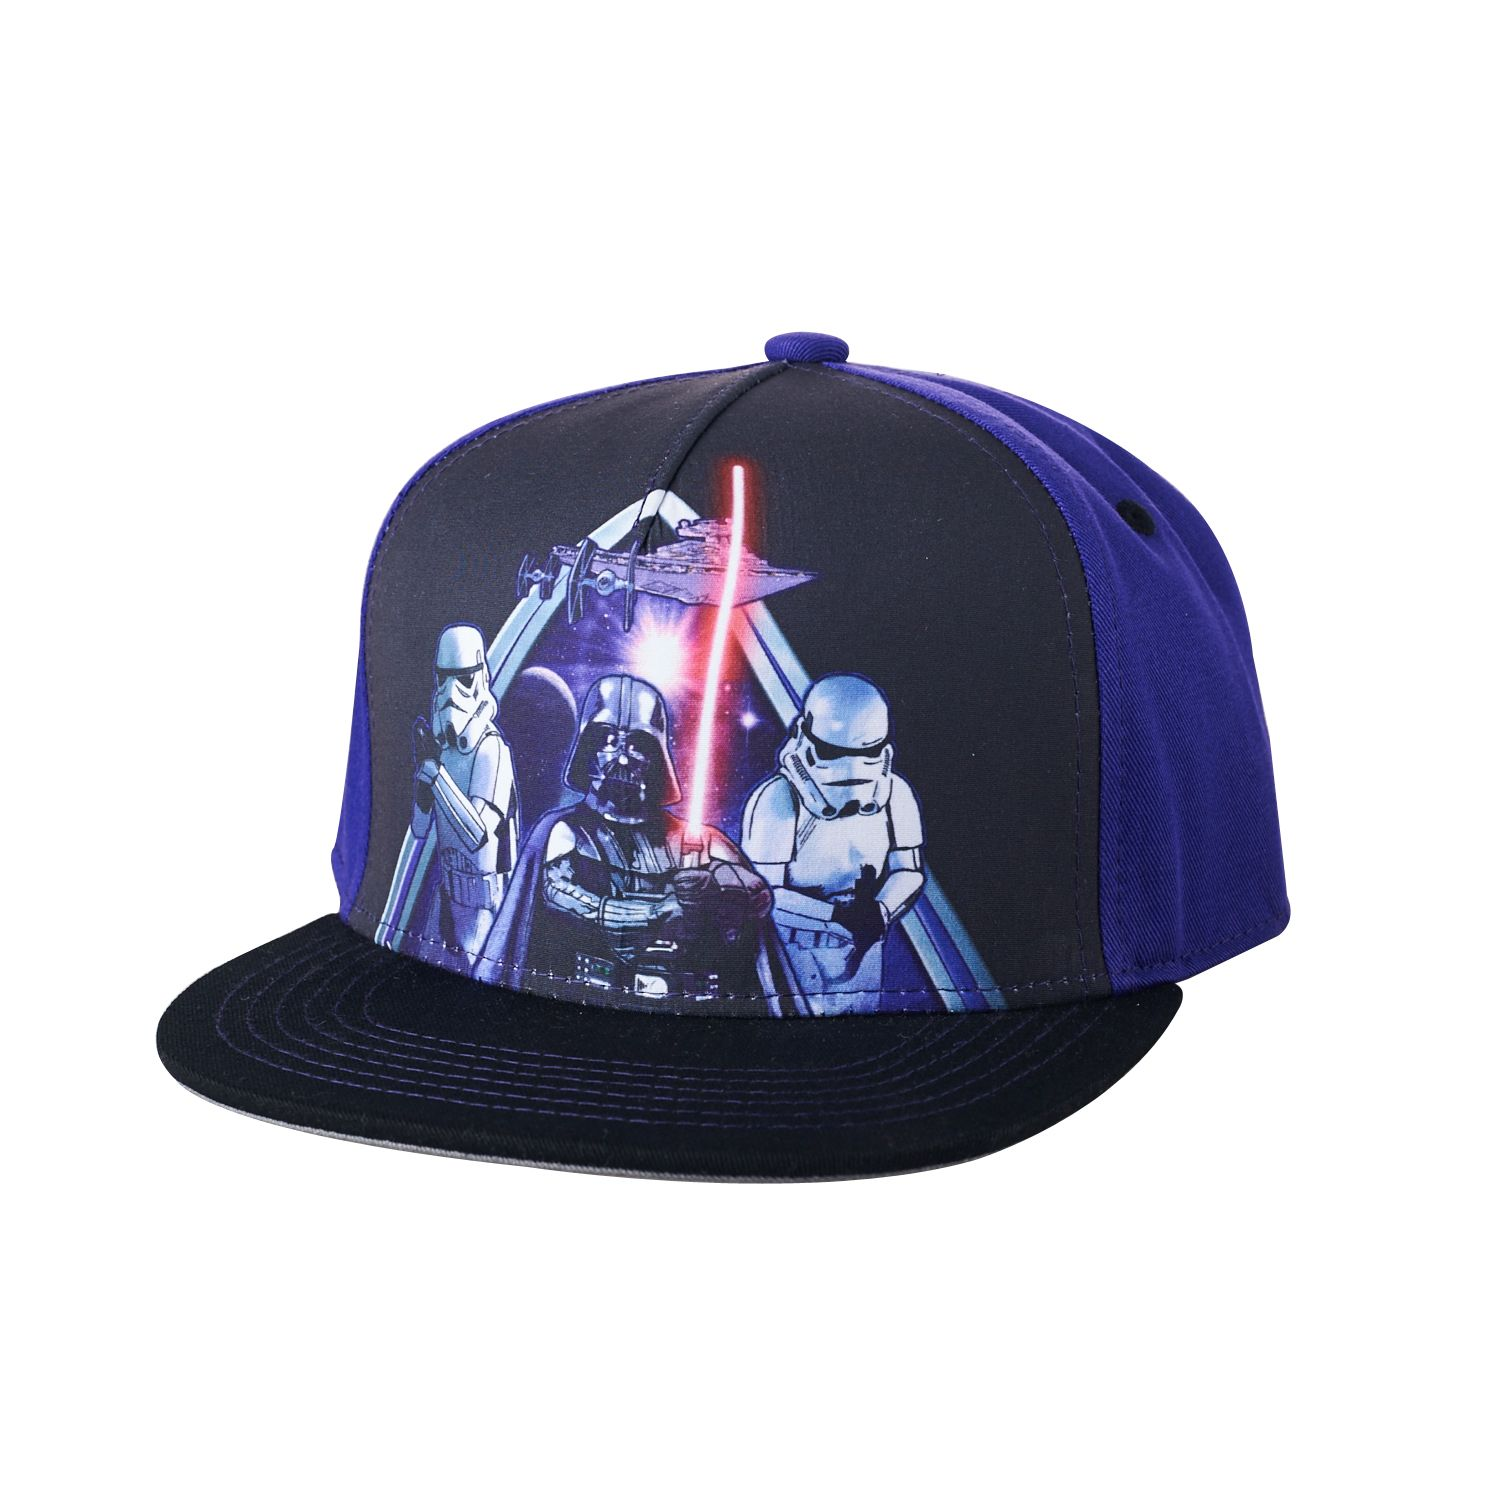 dd37bfb9f03 Star Wars Baseball Hat by Concept One Accessories  StarWars  ConceptOne